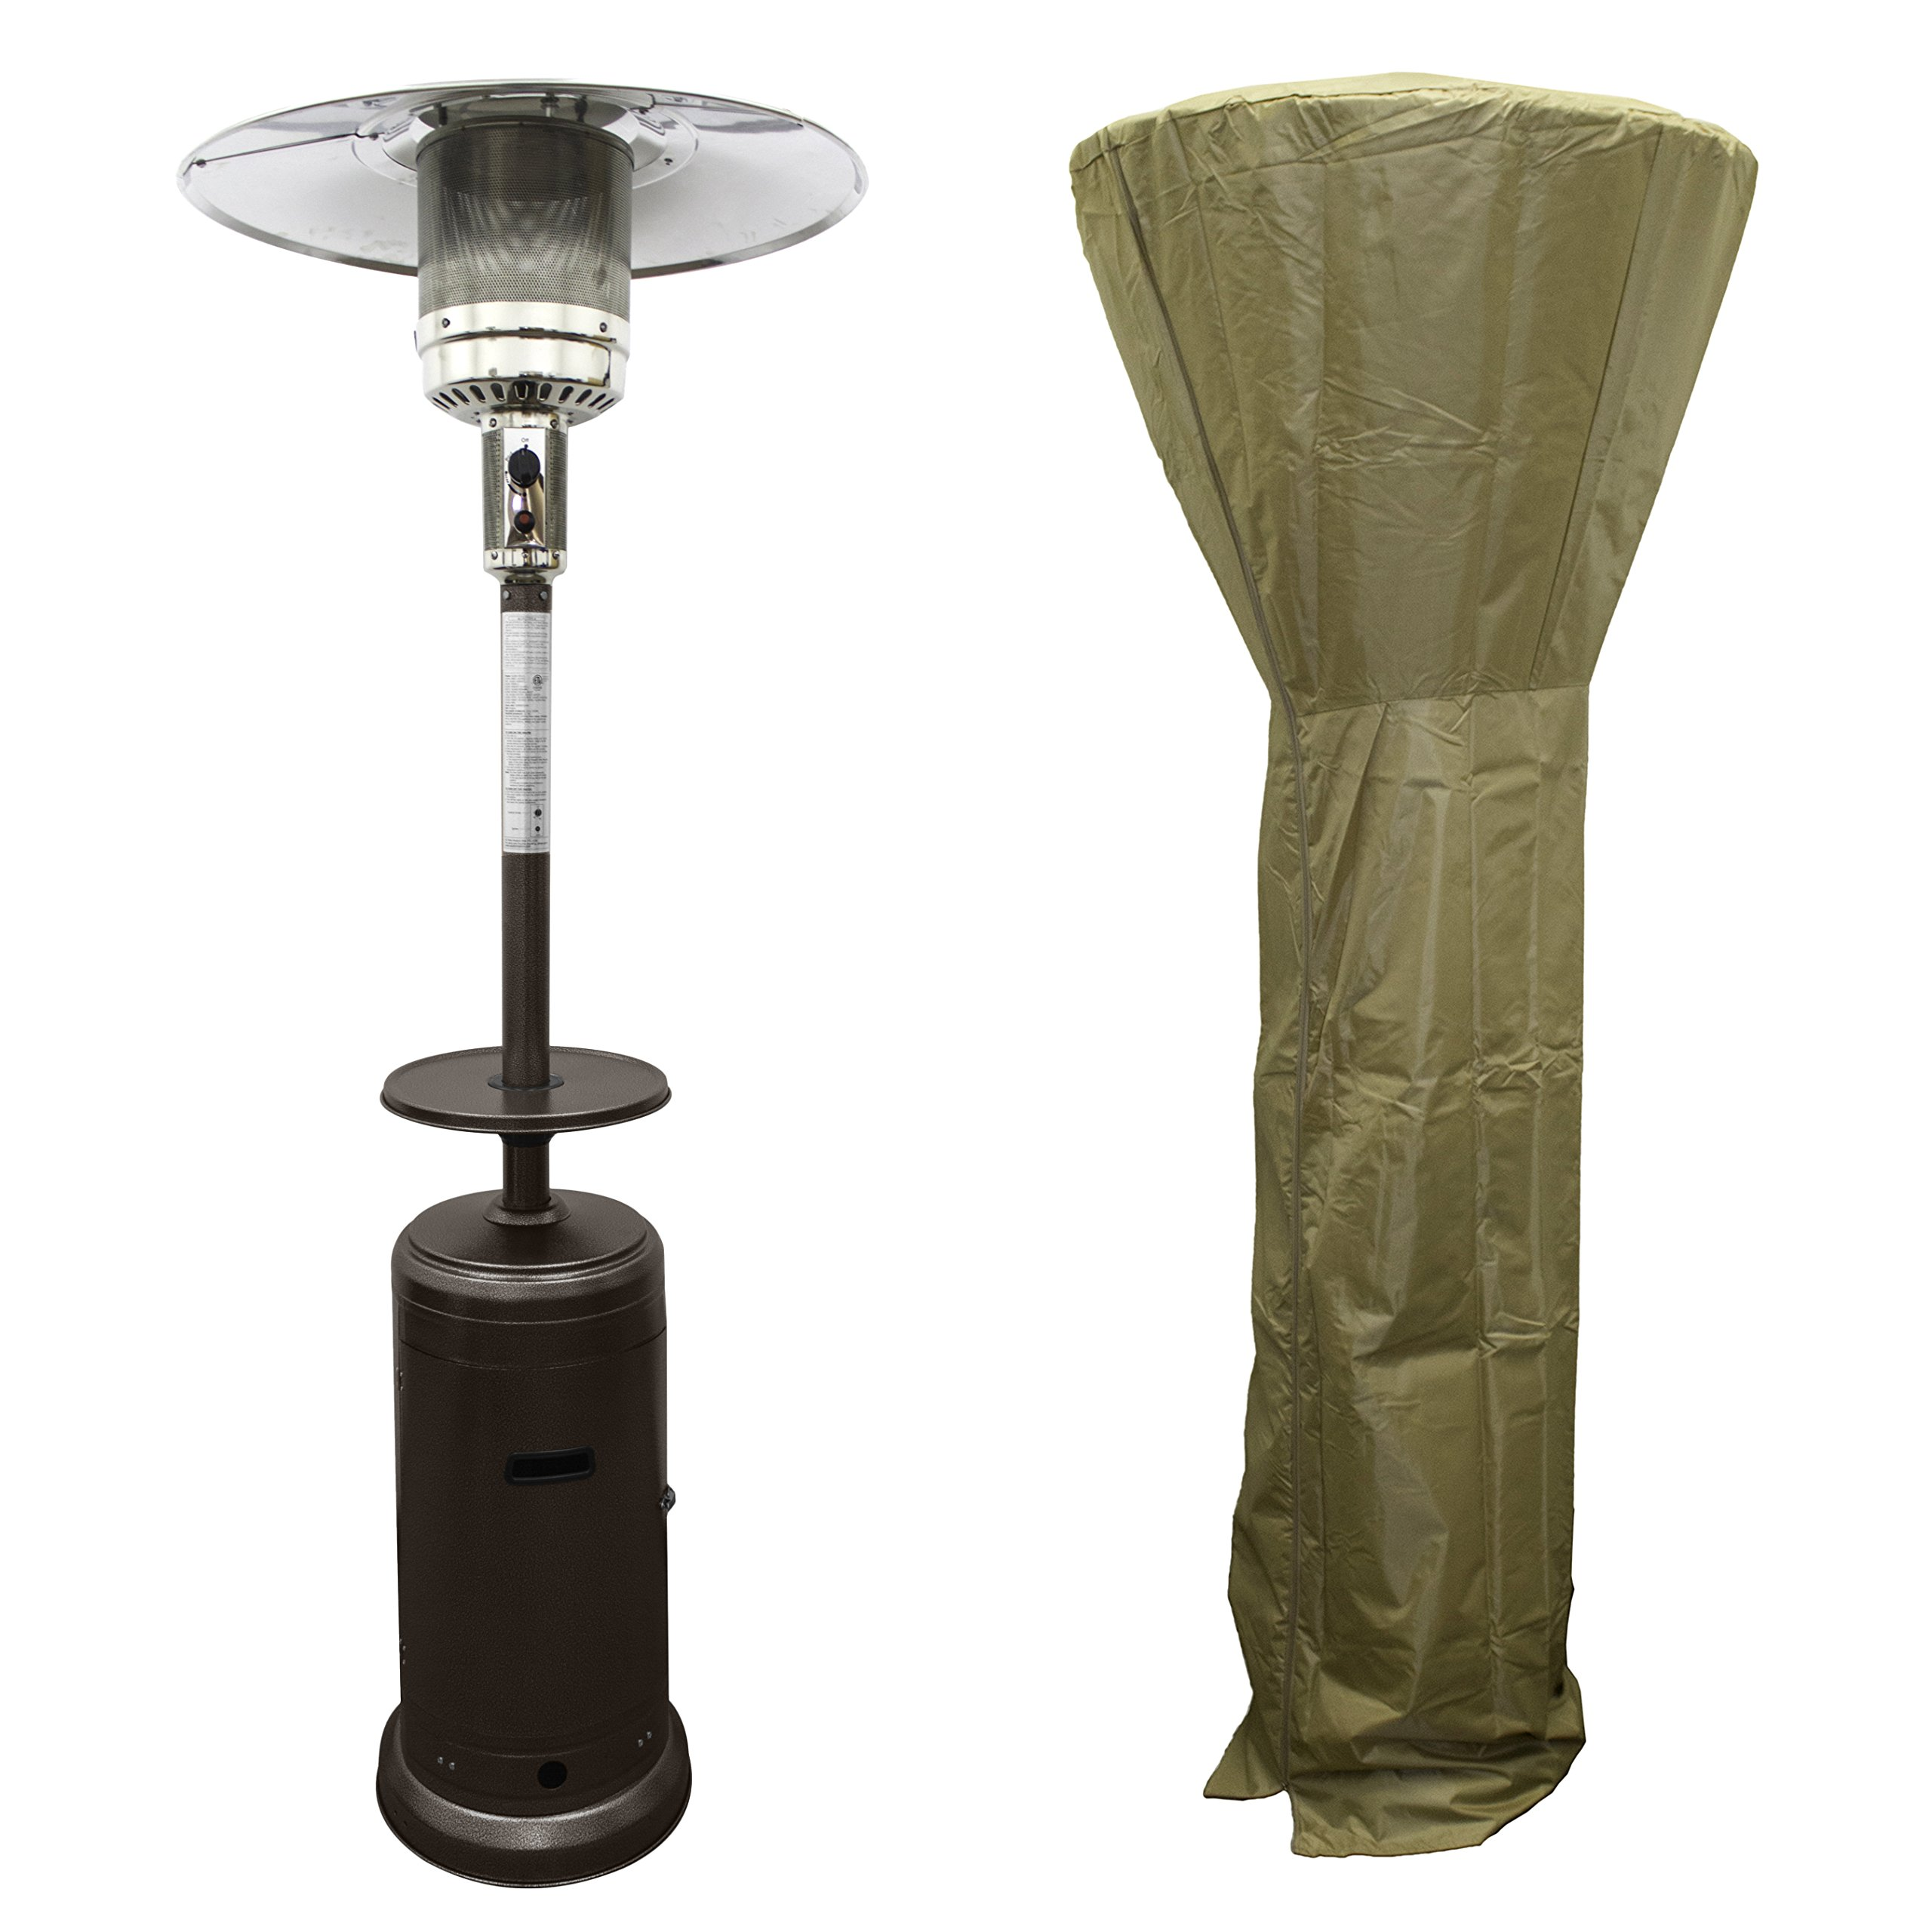 PrimeGlo HLDS01-CG-A HLDS01-Pct-a Propane Patio Heater With Full Length Cover